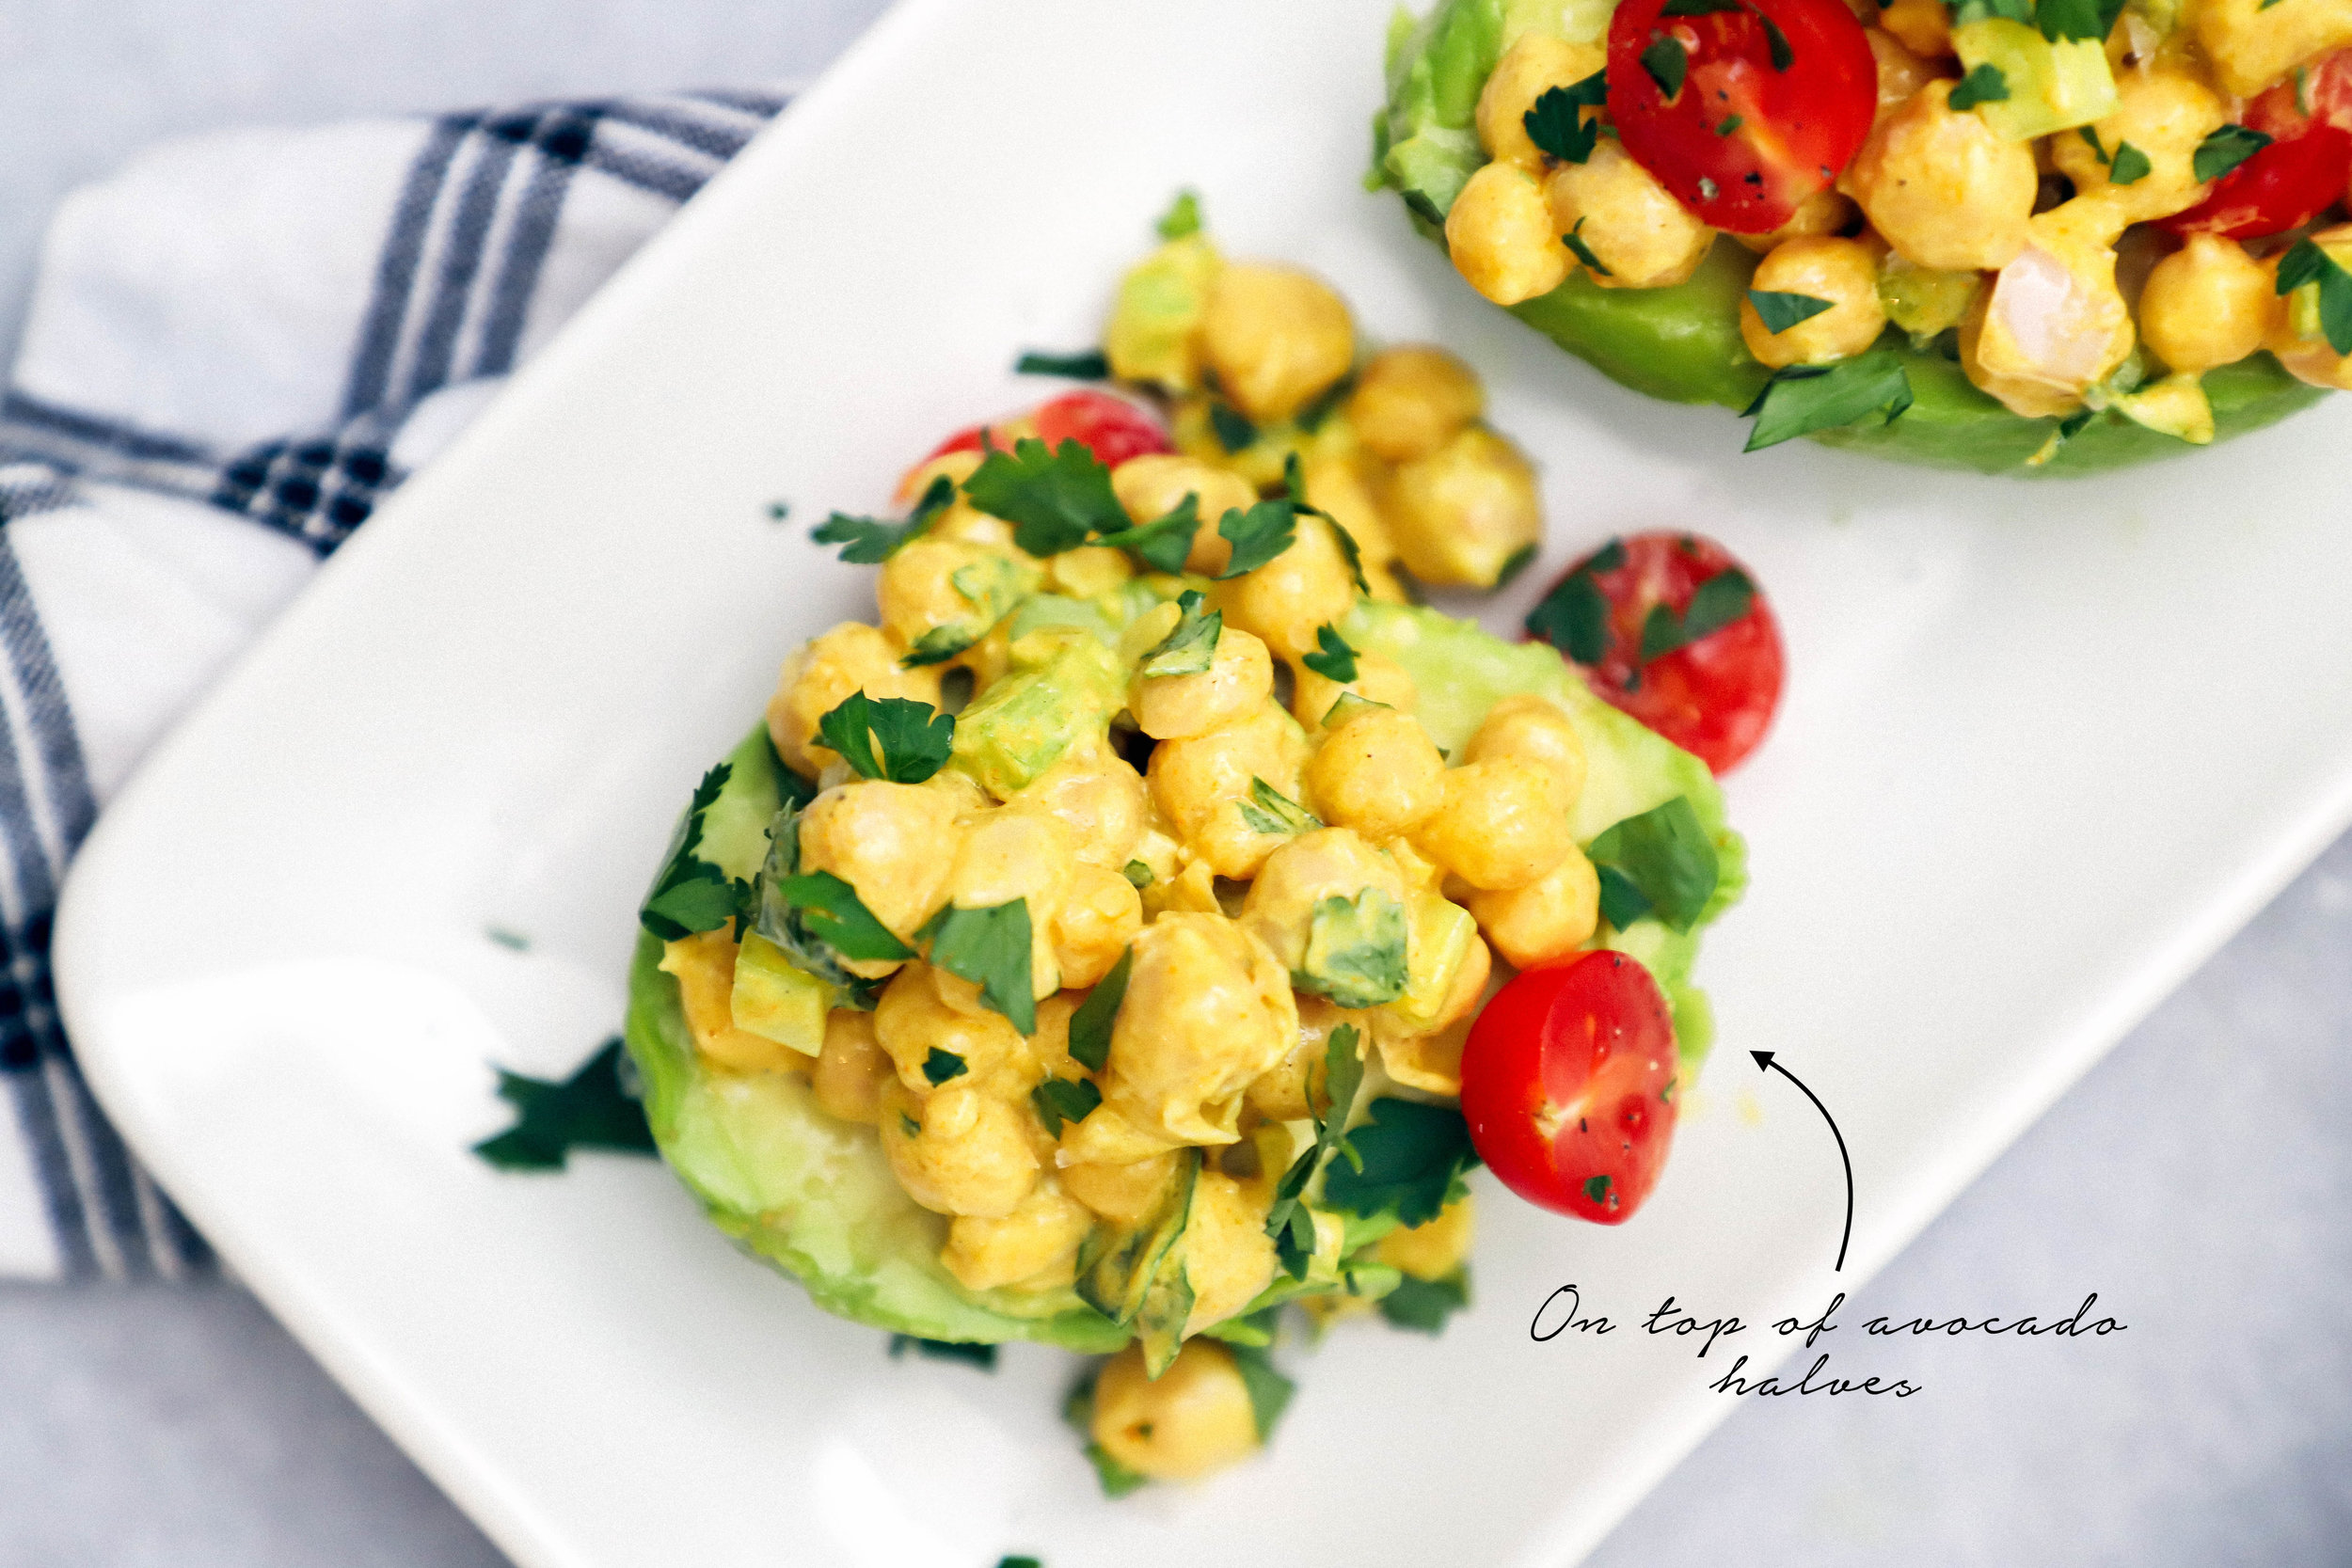 curried chicpea salad on top of avocado havles